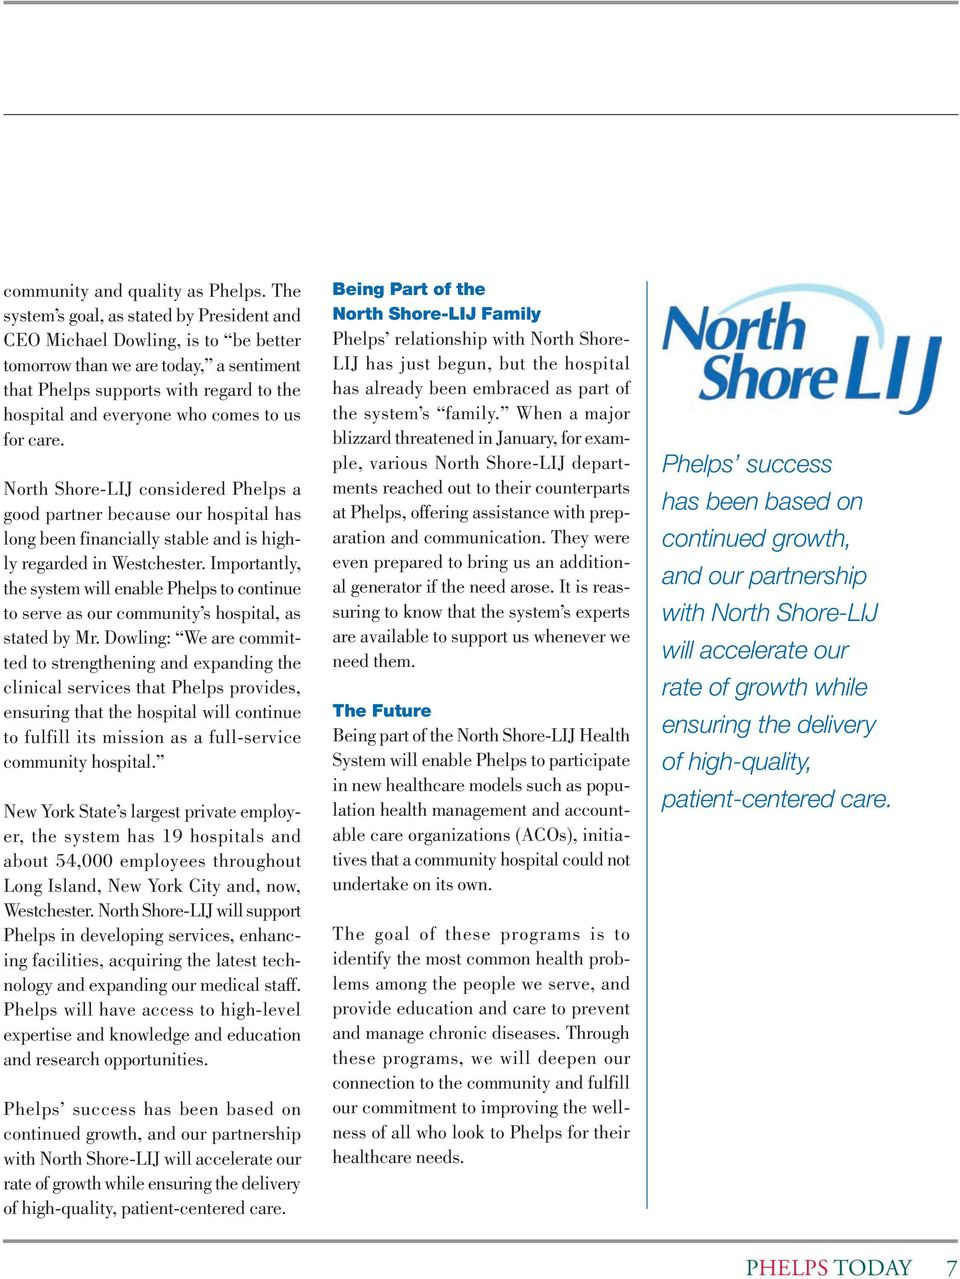 us for care. North Shore-LIJ considered Phelps a good partner because our hospital has long been financially stable and is highly regarded in Westchester.